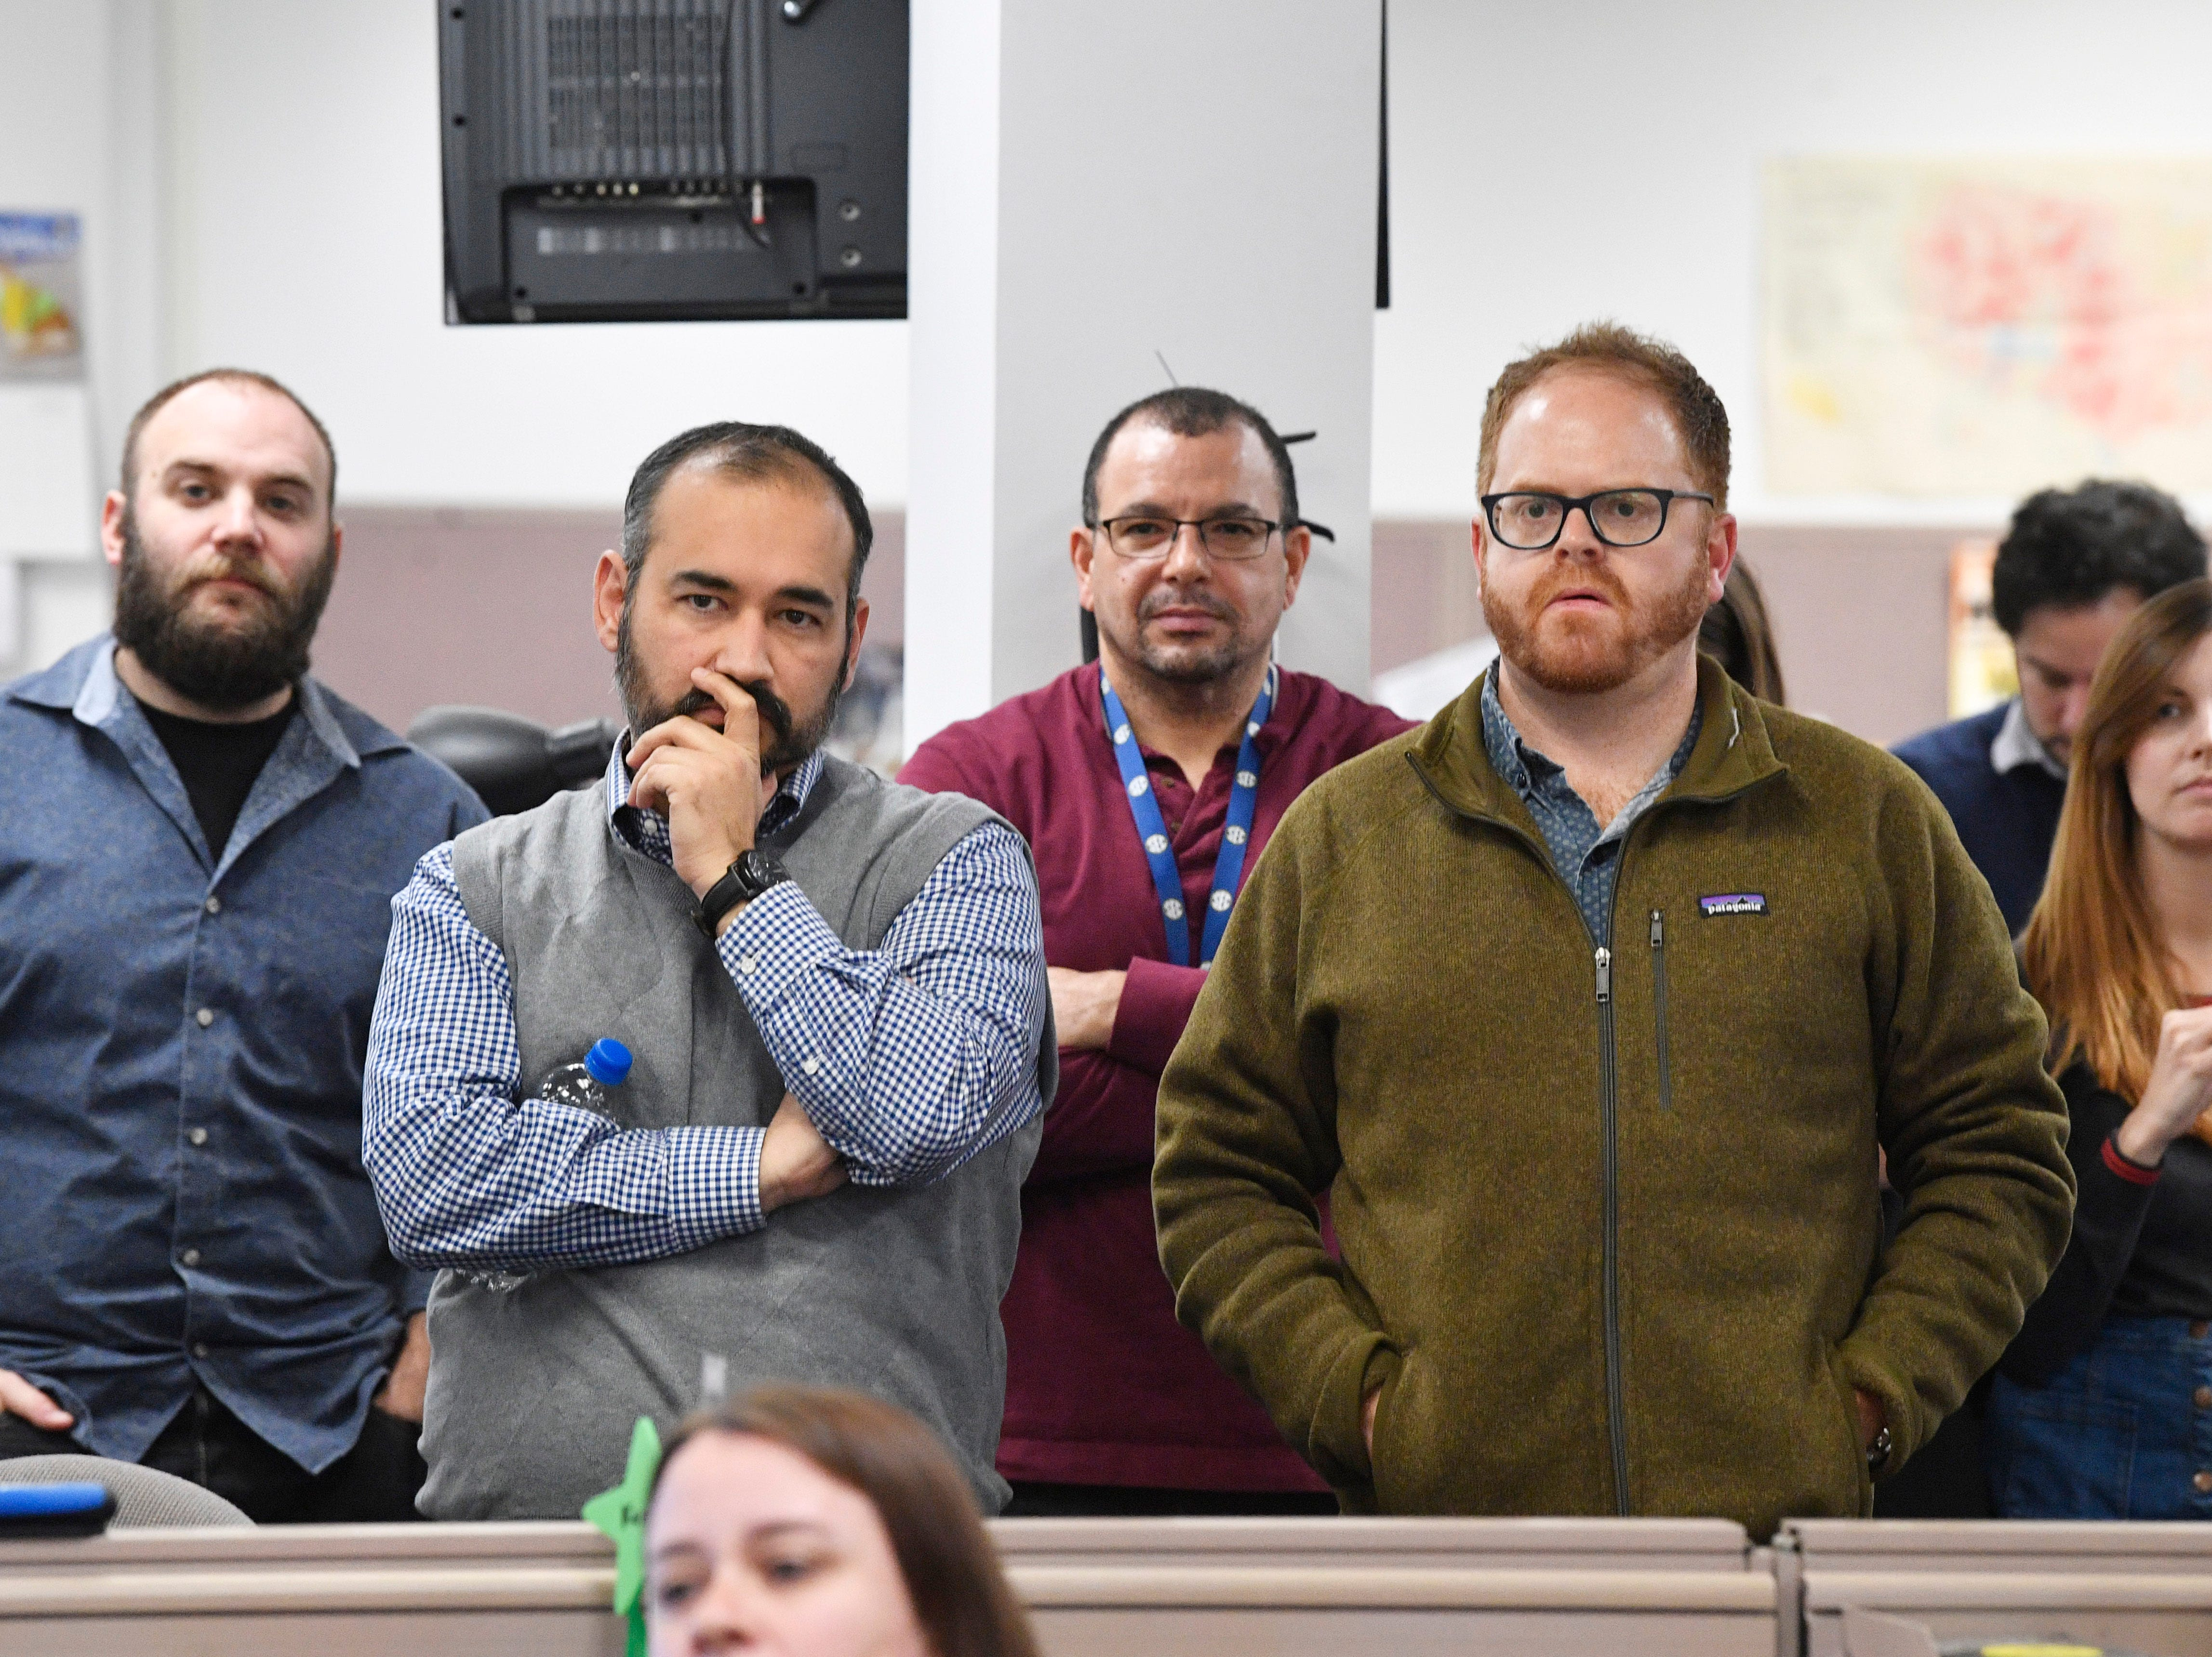 Staff members listen during a meeting in The Tennessean newsroom Wednesday, Jan. 2, 2019, in Nashville.